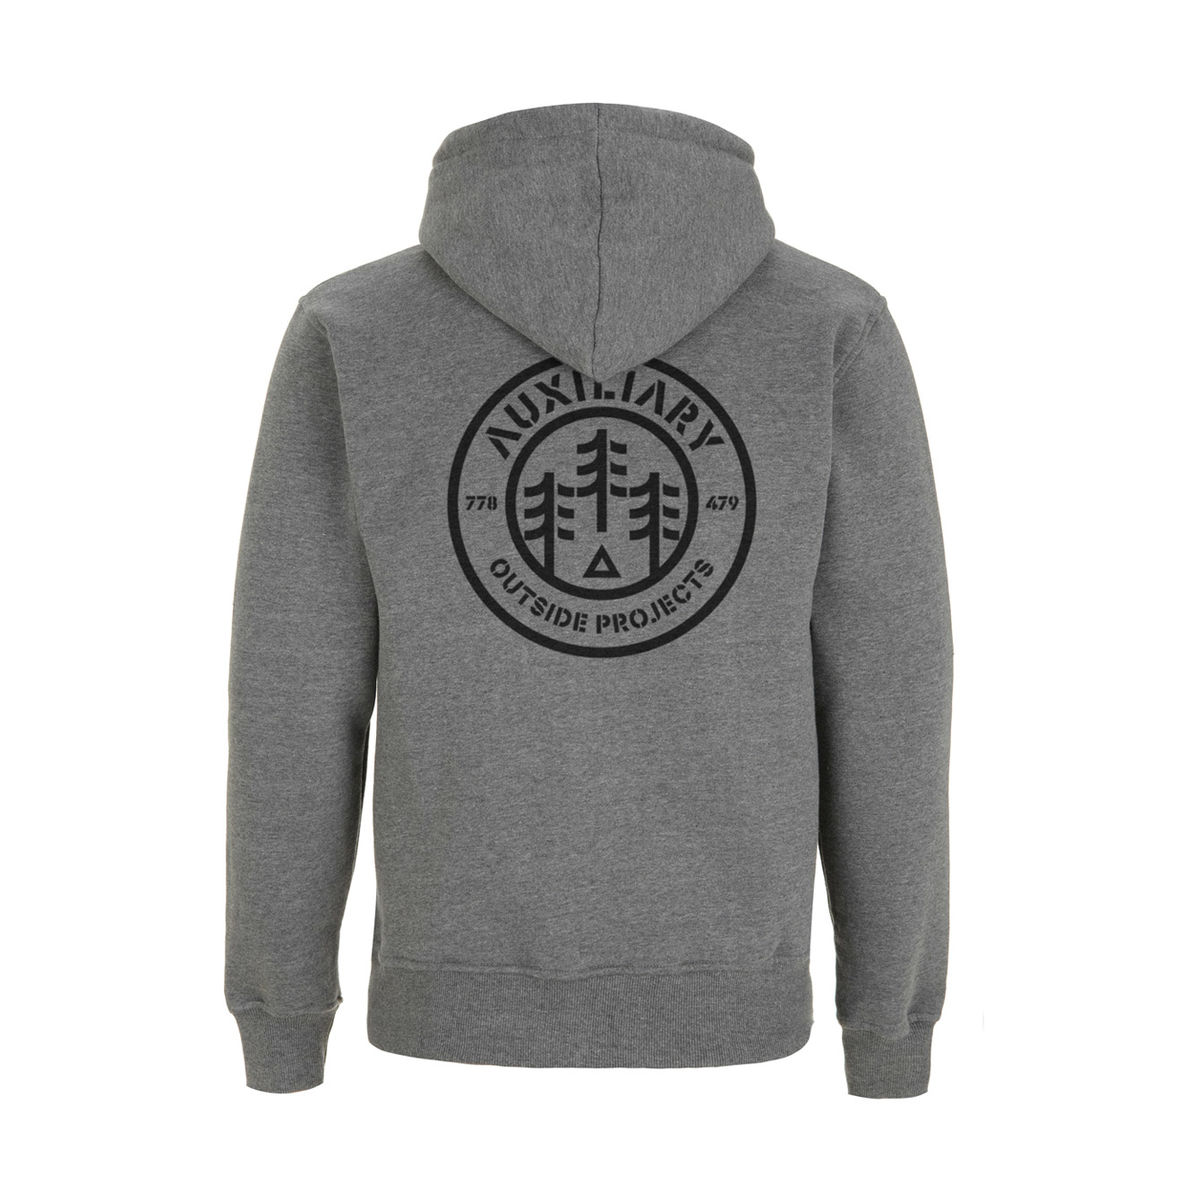 AOP - Auxiliary Outside Projects - Hoodie - product images  of